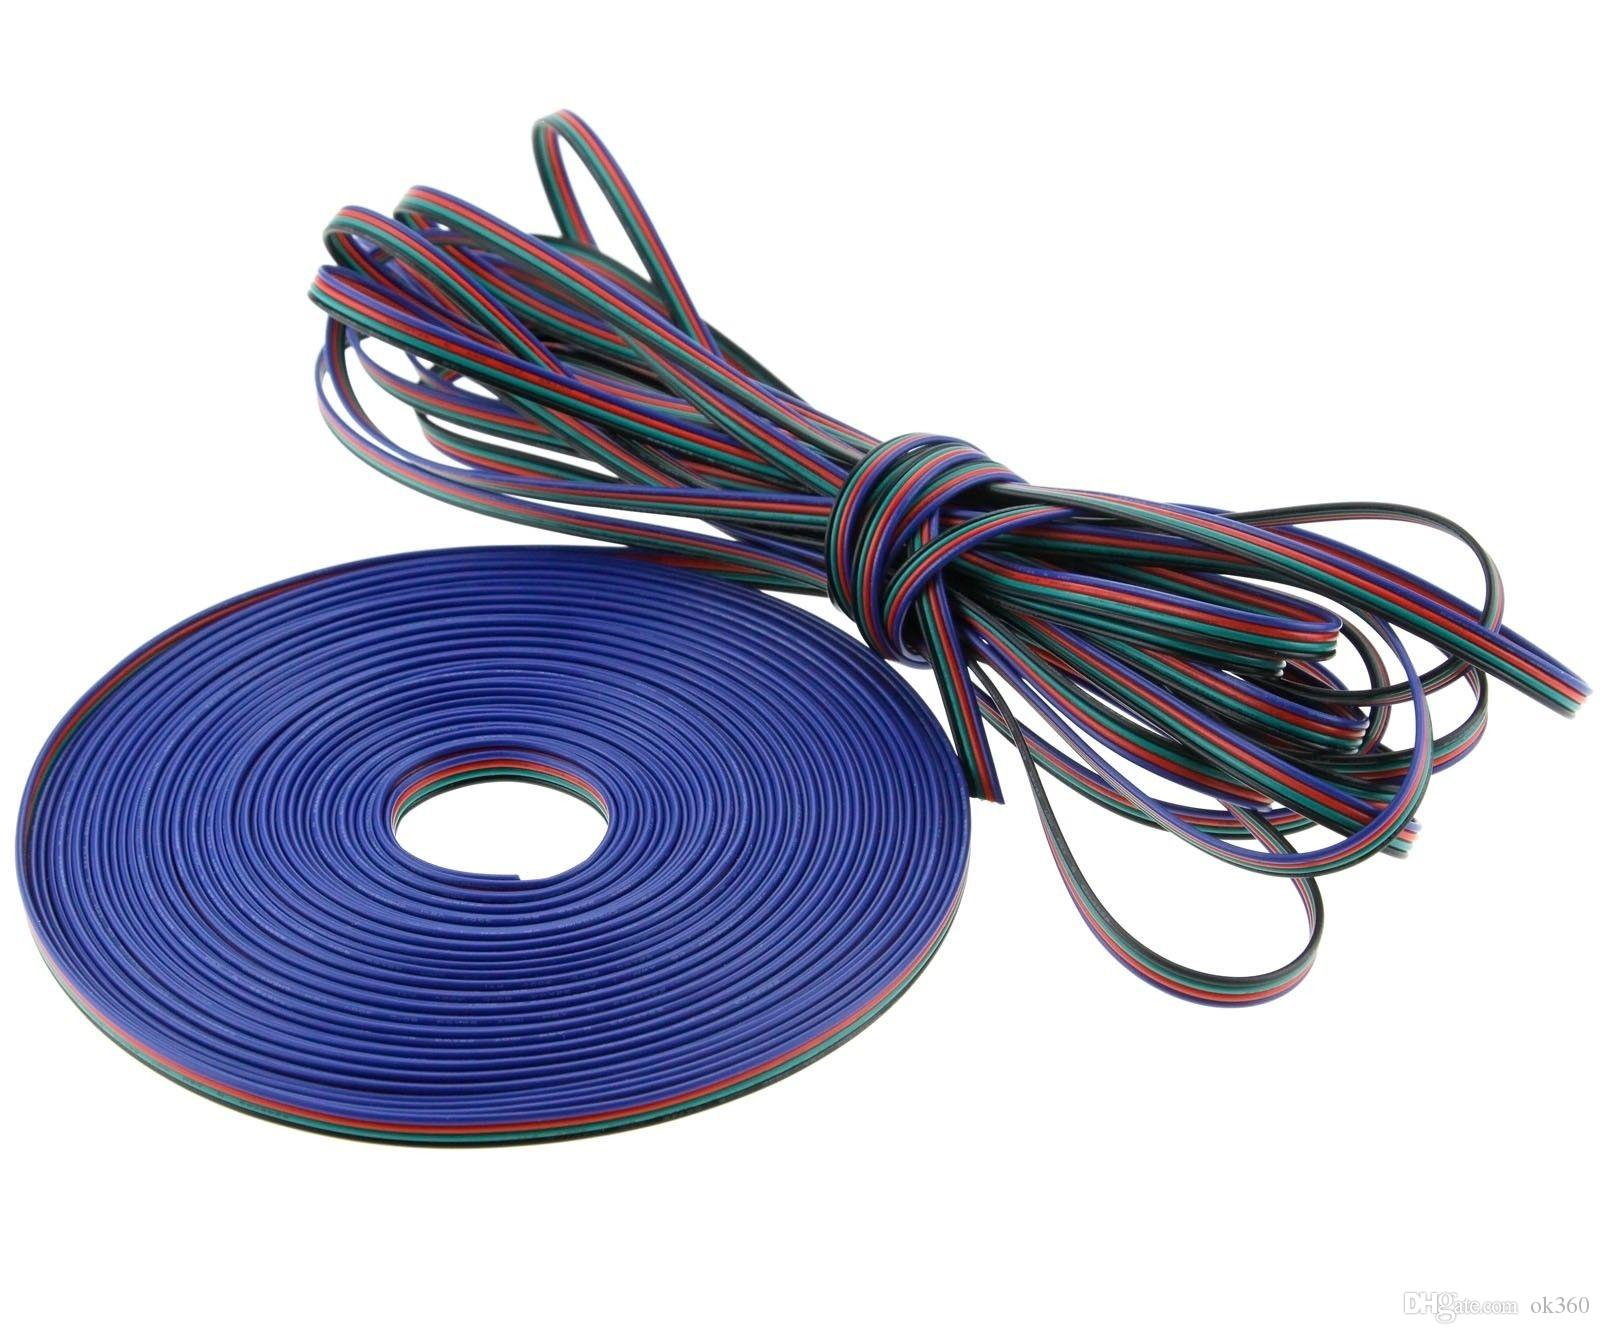 2018 10 Meters Rgb Connecting Wire 22awg Extrnsion Cord For Led 12v Strip Light Wiring 22 Extension From Ok360 113